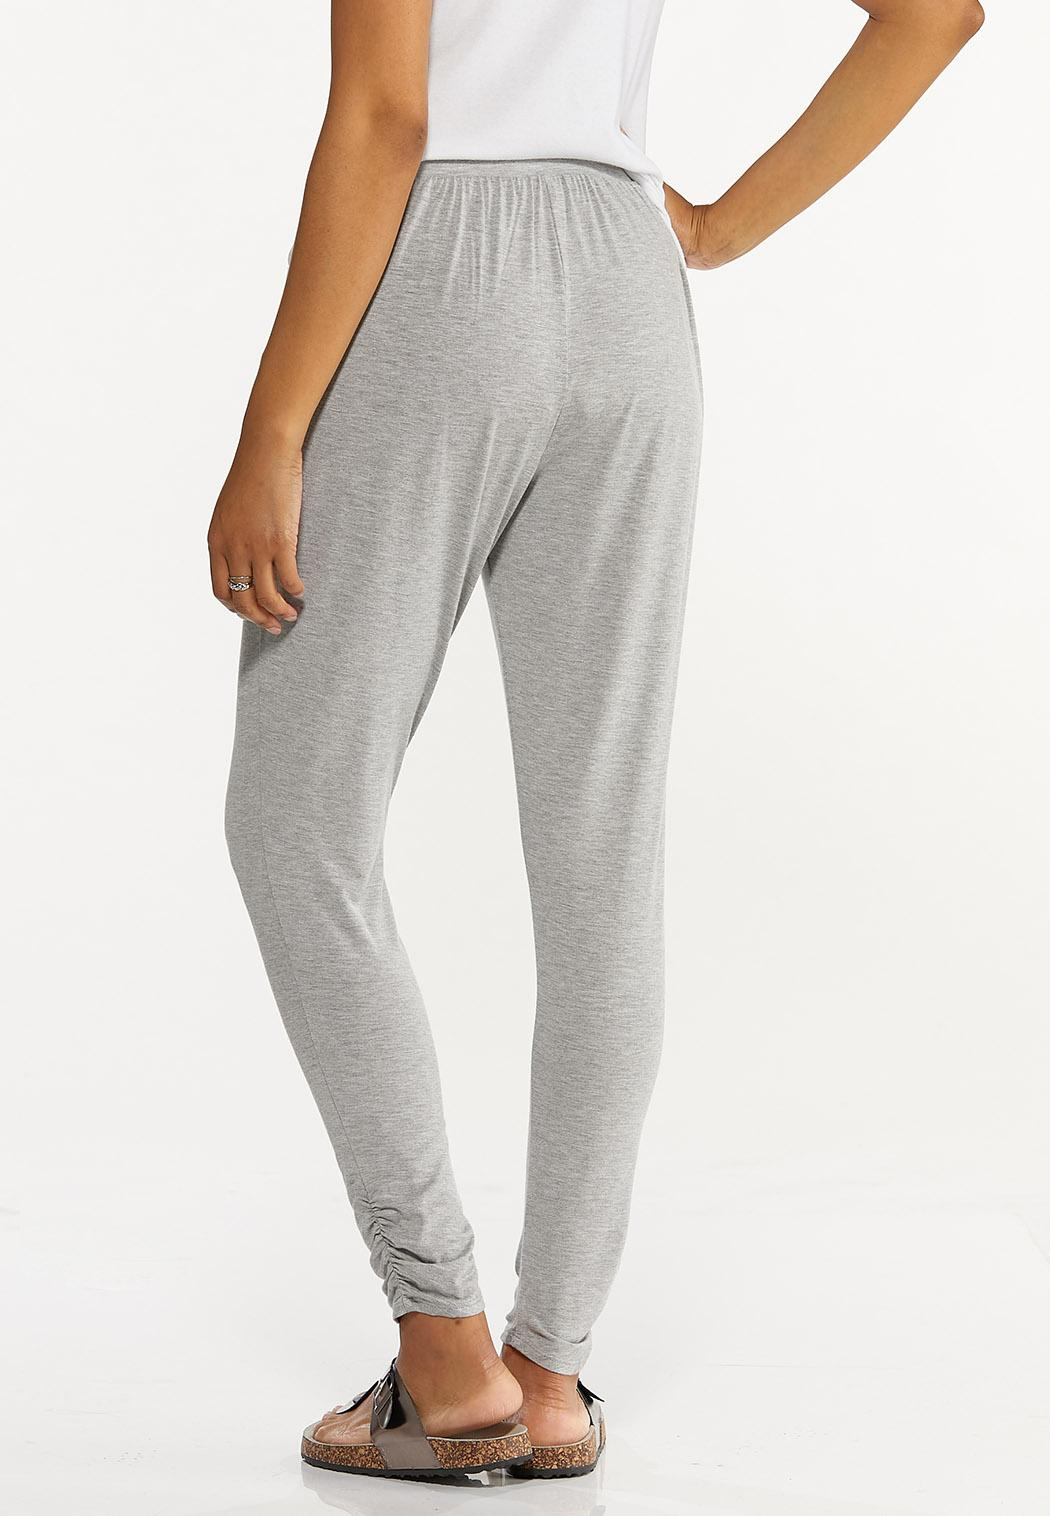 Gray Ruched Pants (Item #44598341)